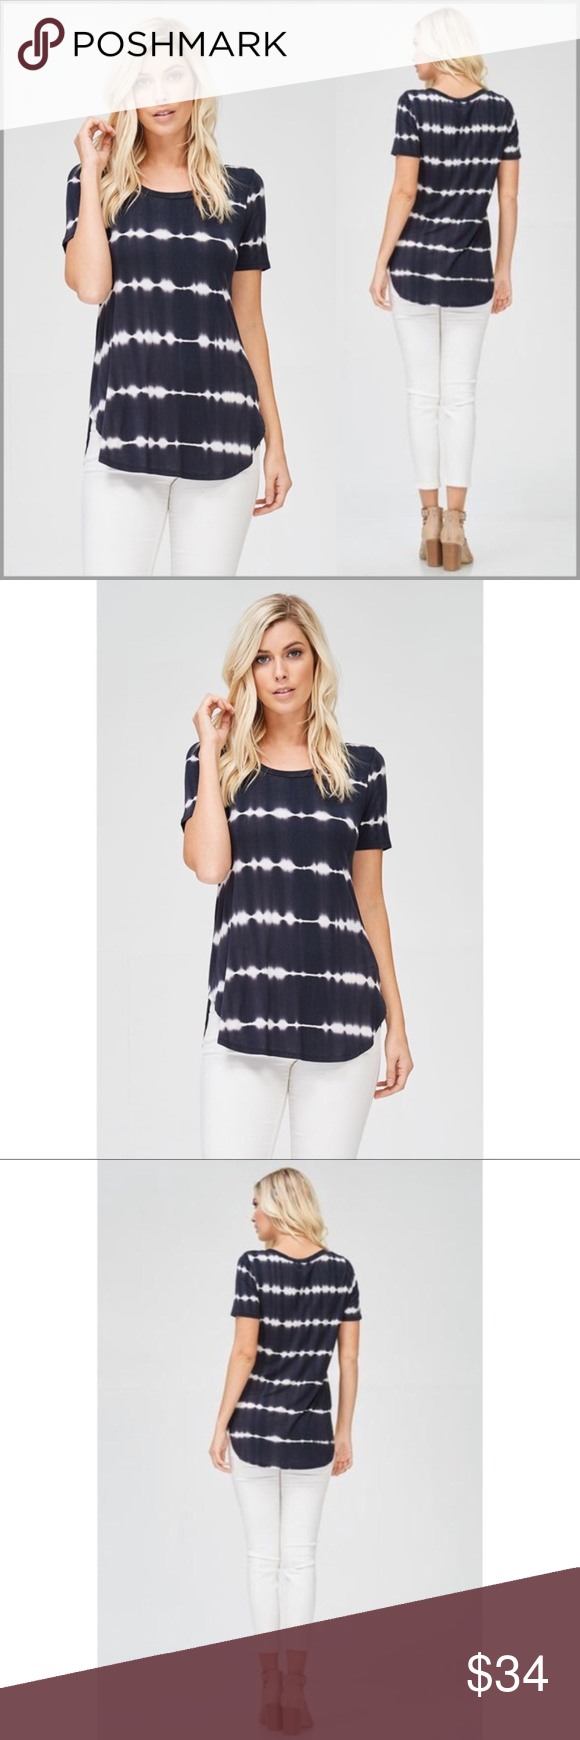 """Black/White Dip Dye Top Black and white (slight look of dark navy blue), dip dye top with curved hemline.  *Scoop Neck *Short Sleeves *Curved hemline *95% Rayon 5% Spandex  Measurements: Small:          Bust: 33"""" Length: 27"""" Medium:     Bust: 35"""" Length: 28"""" Large:         Bust: 37"""" Length: 28""""  **Length measurement is from shoulder seam to longest point in front**  ❗️Price is firm unless bundled❗️ #L4E8821159 Tops"""